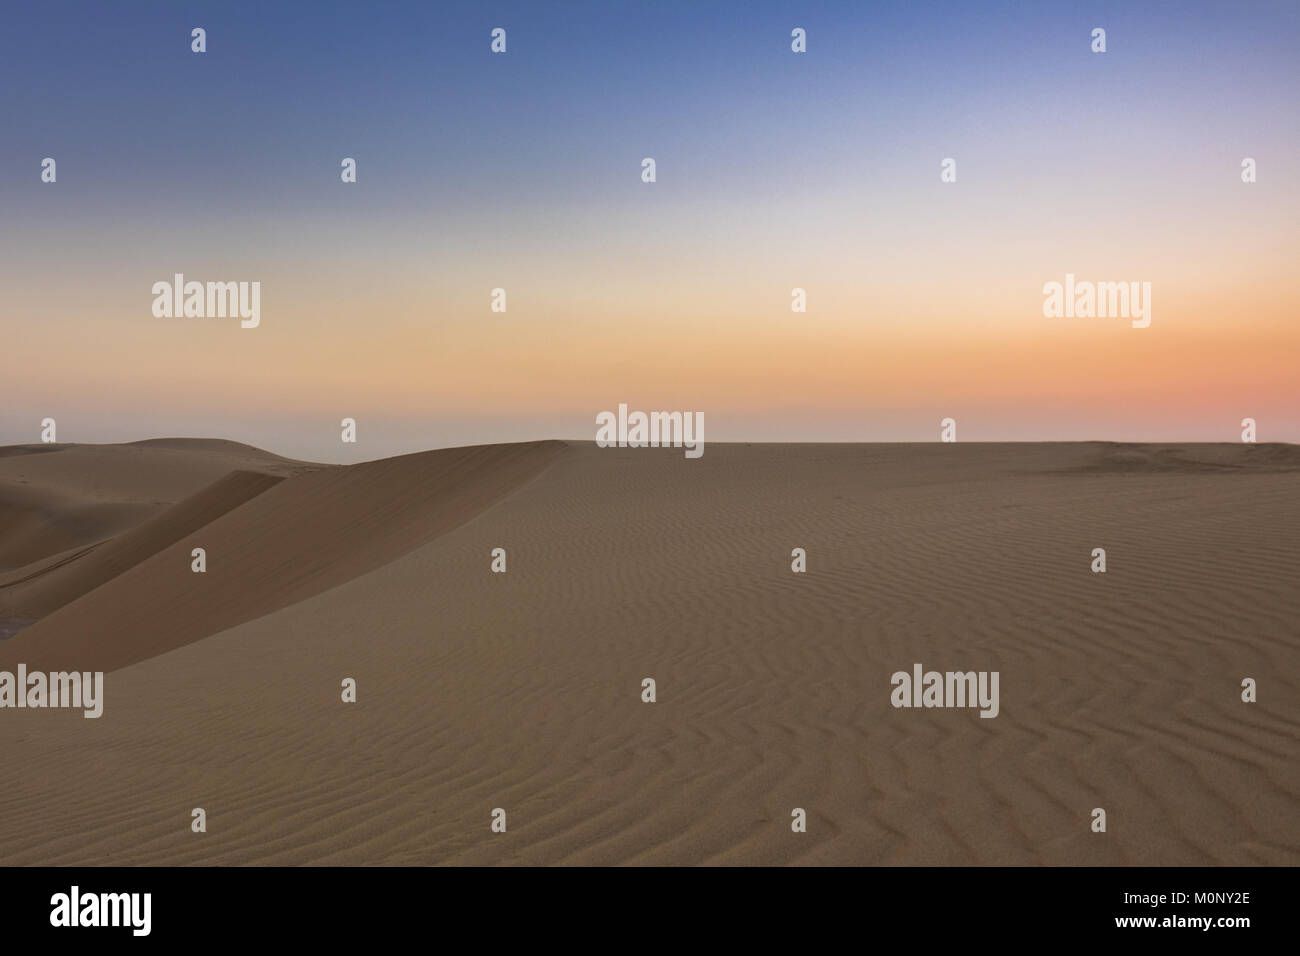 Wide photo of a desert landscape showing it's vastness and beautiful curved lines - Stock Image